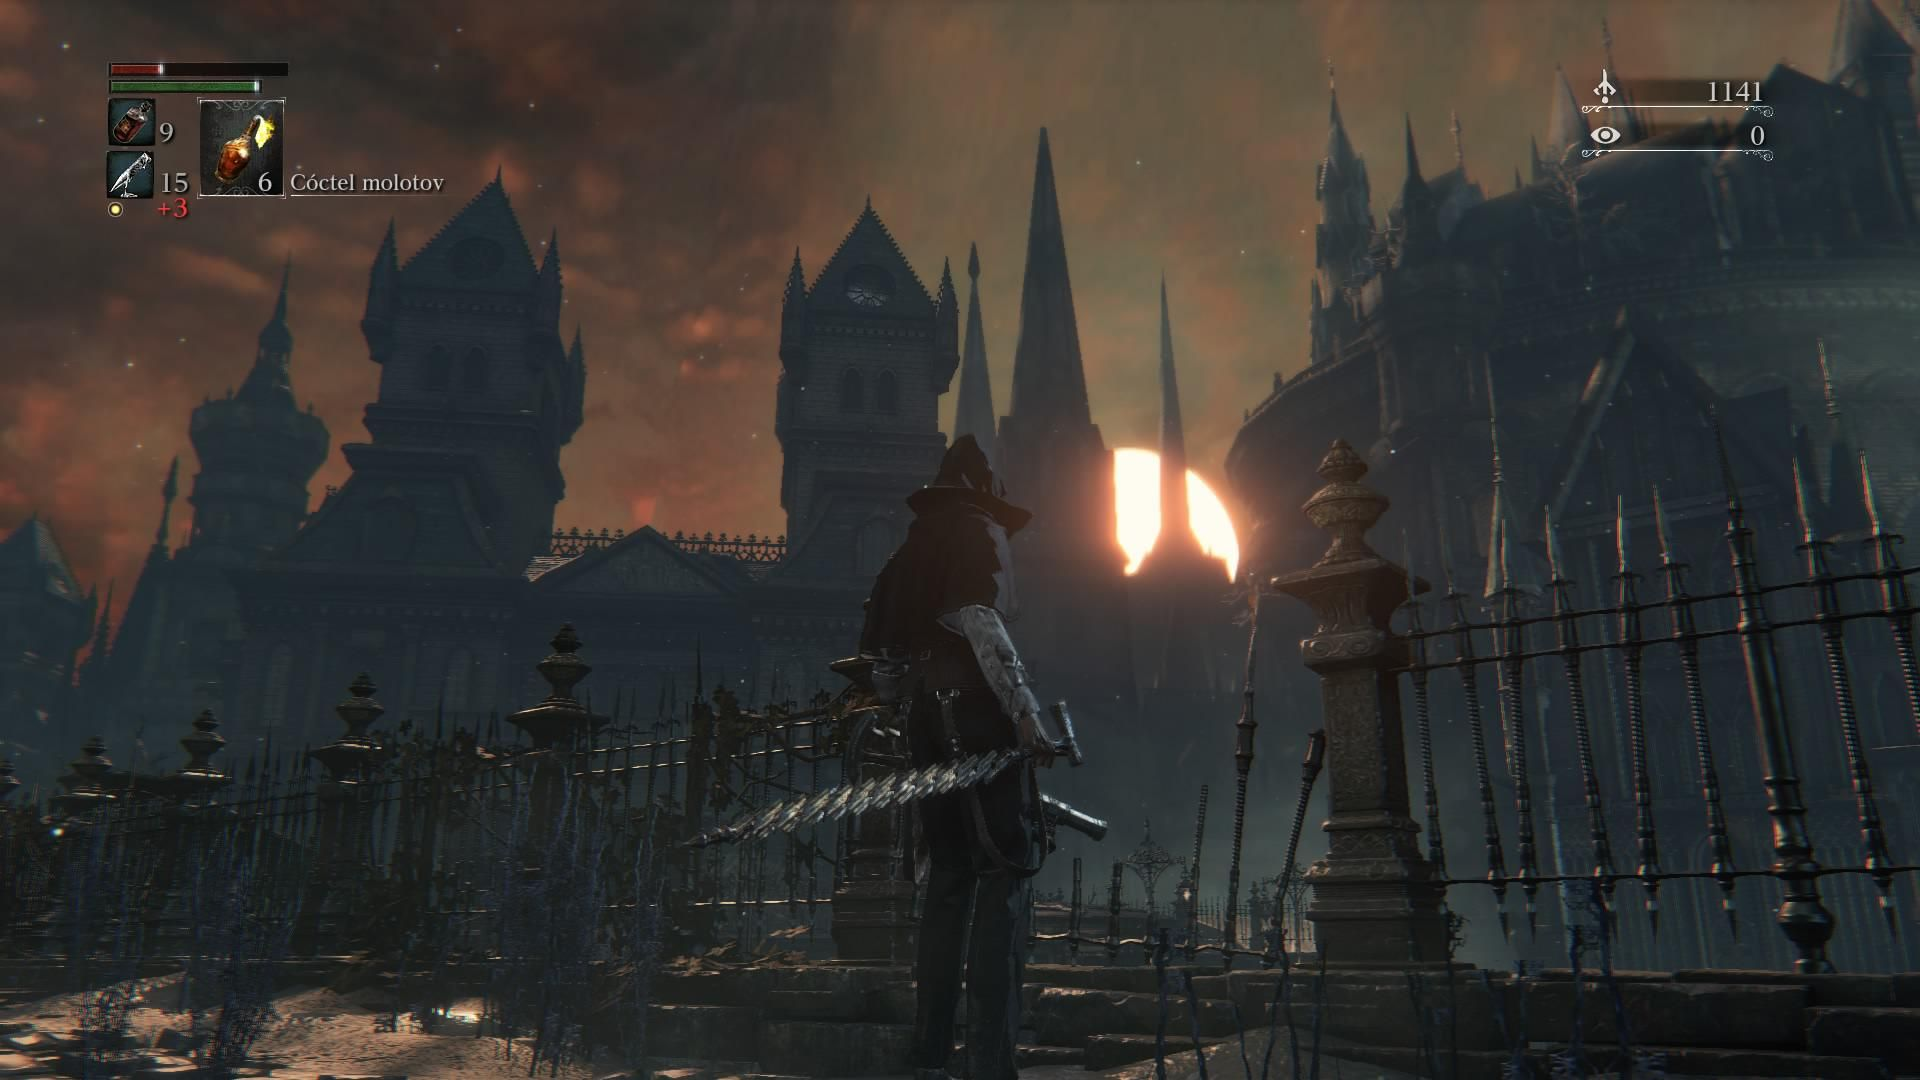 bloodborne exclusiva de PlayStation